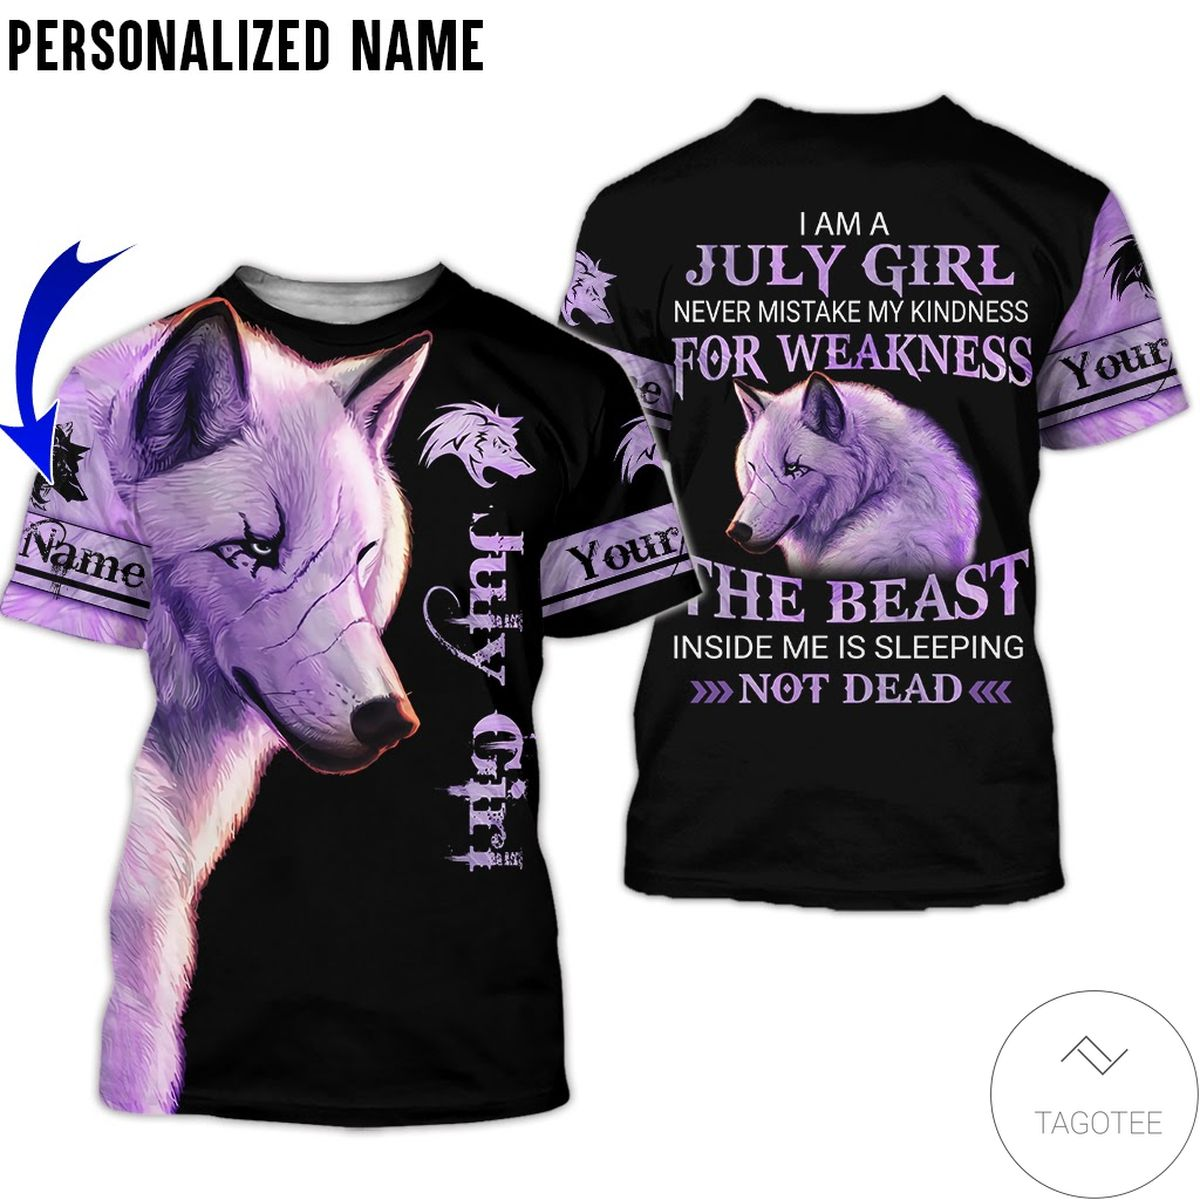 Personalized Name Wolf July Girl The Beast Not Dead All Over Print Hoodie